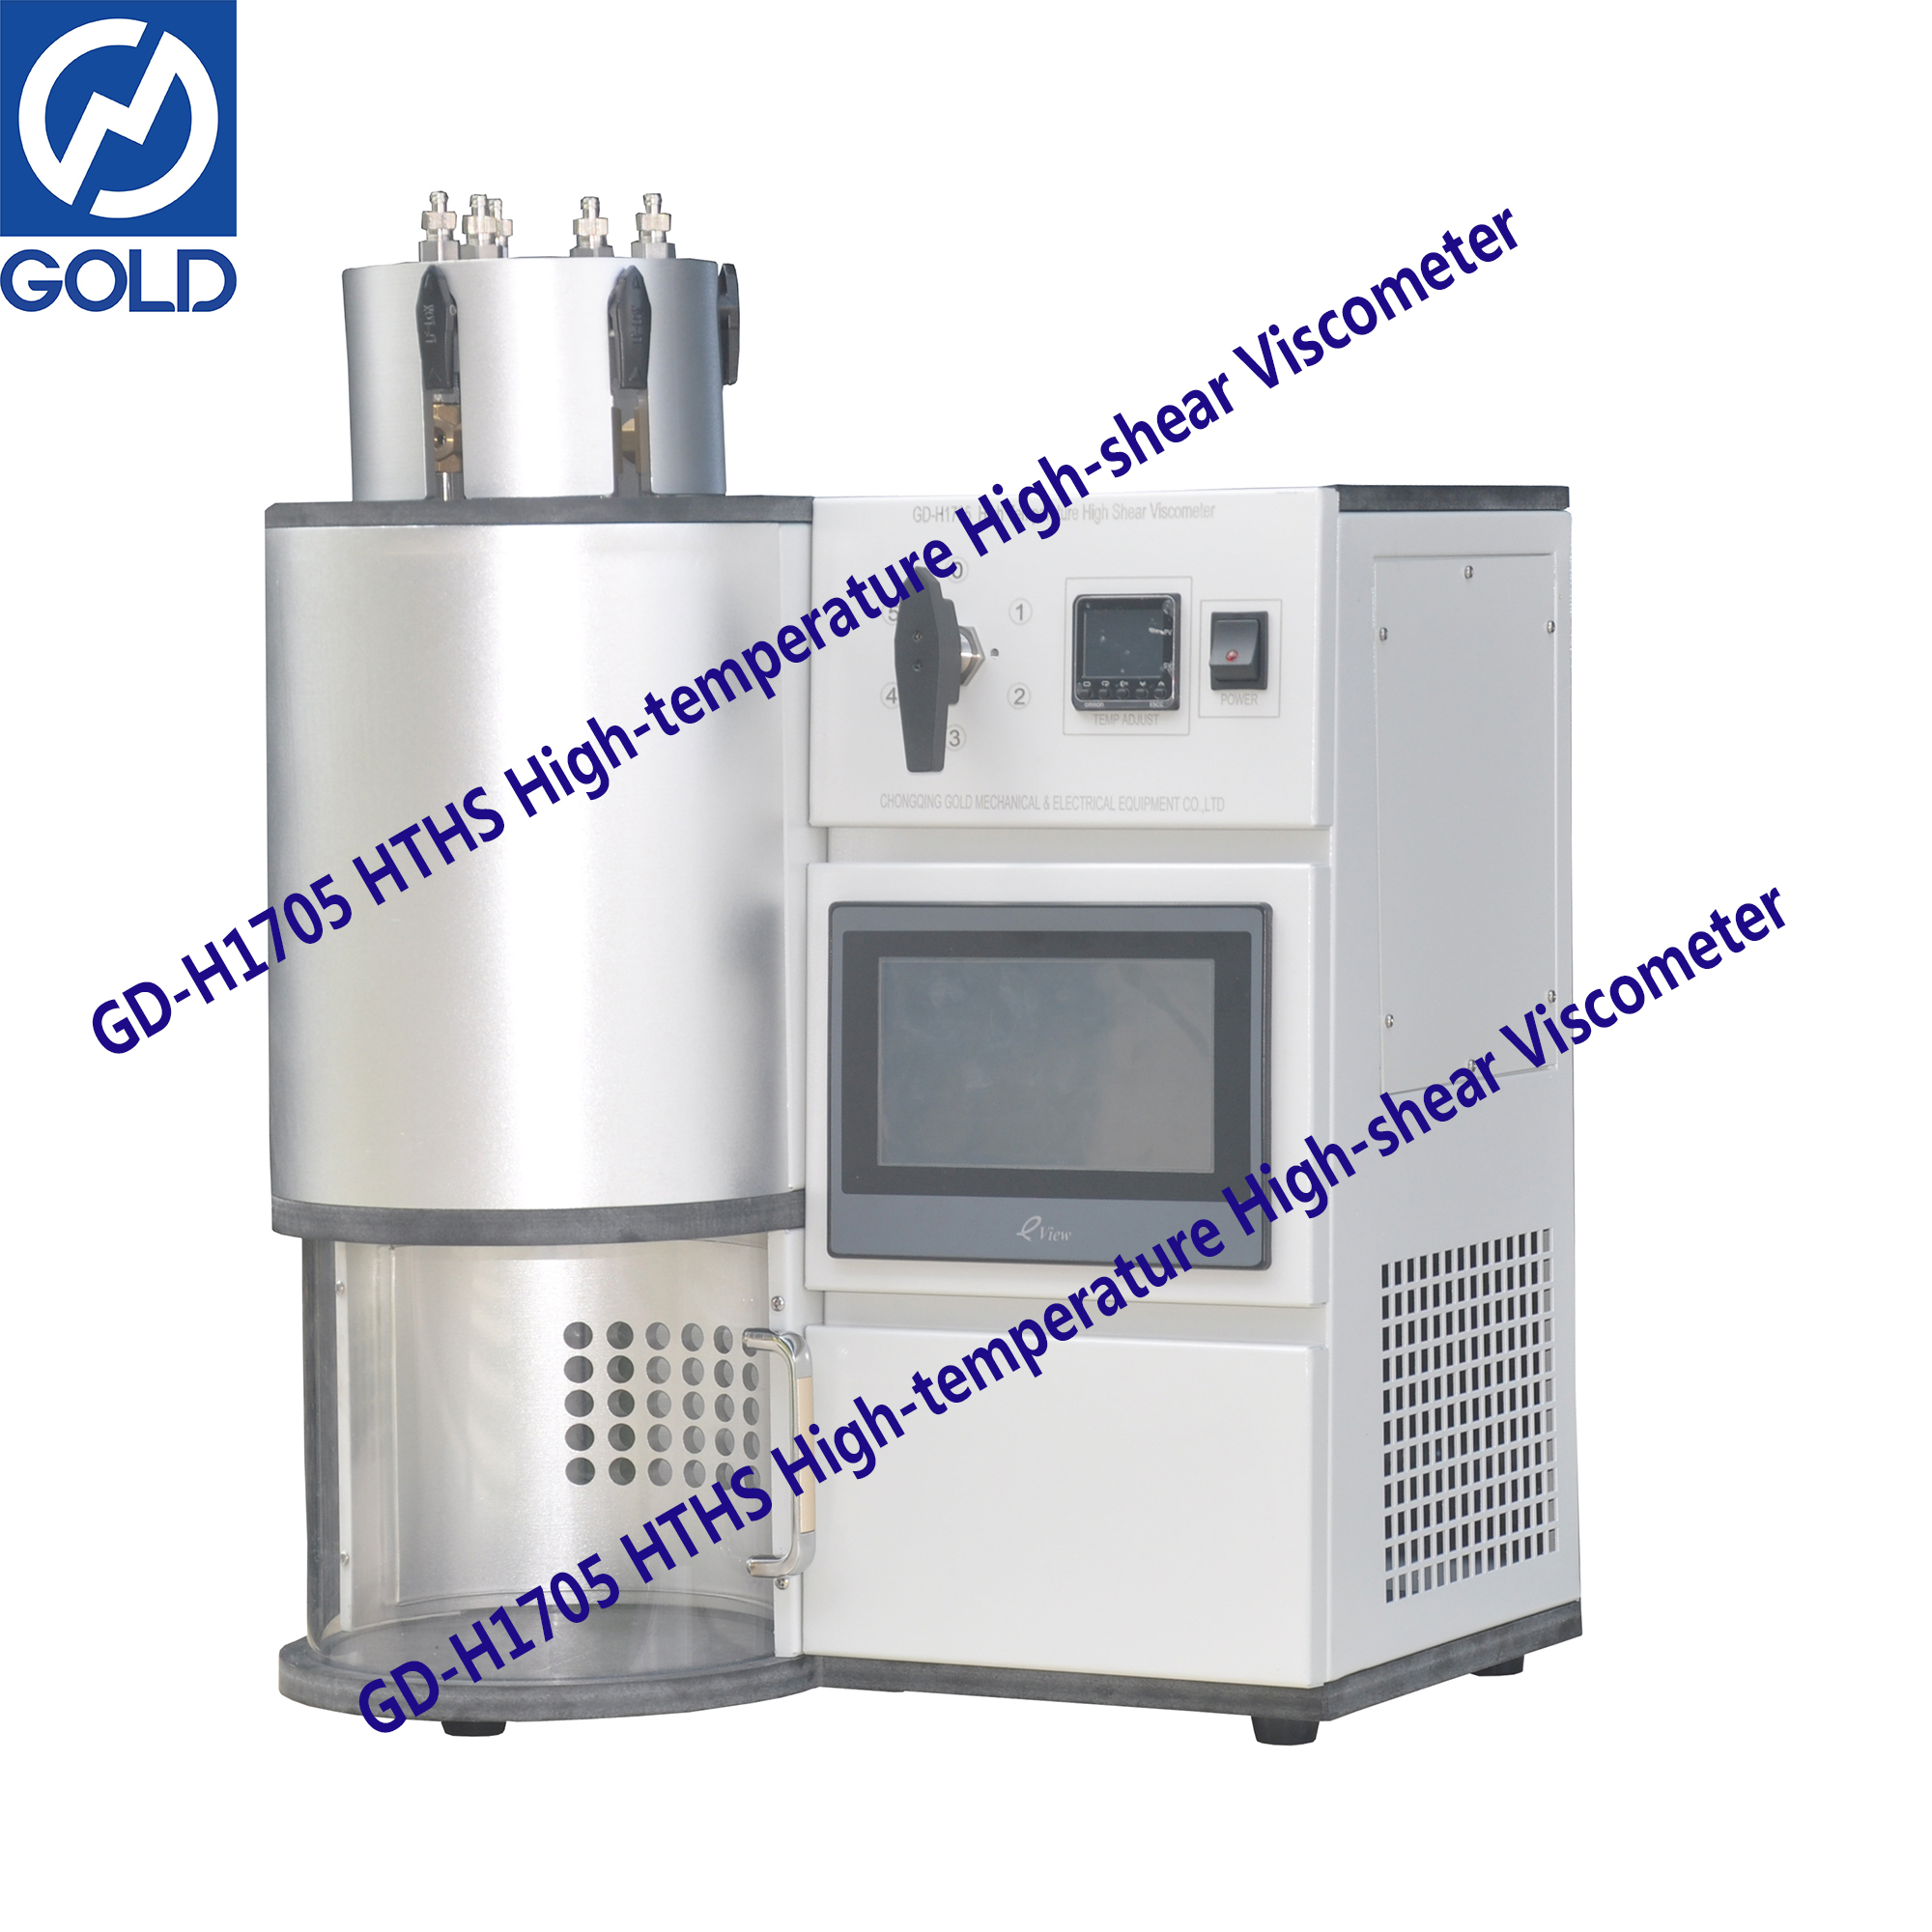 HTHS multicell capillary viscometer (2)